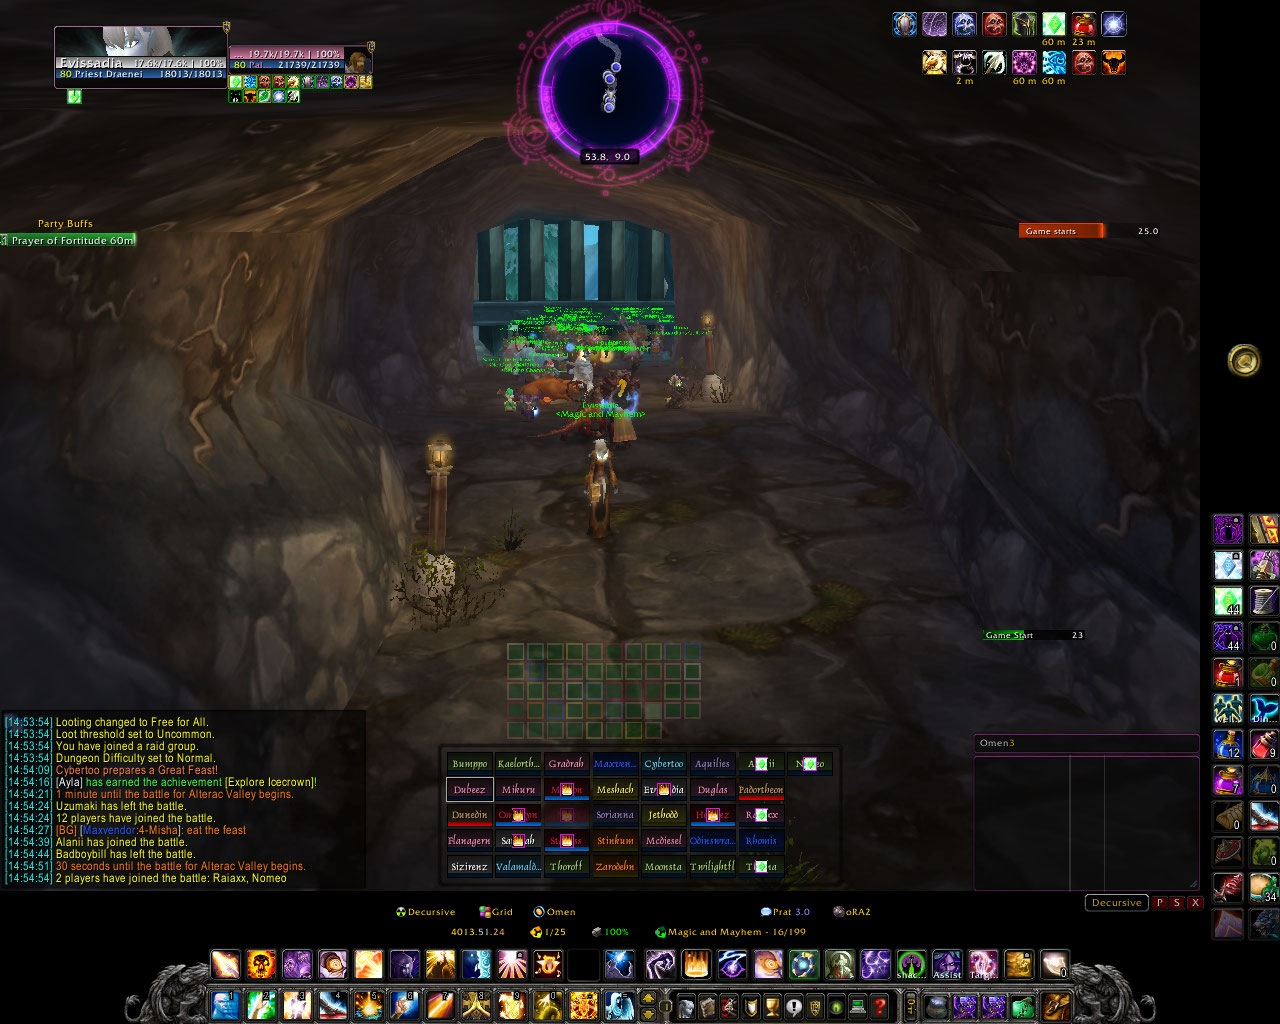 33 Raid Healing UIs